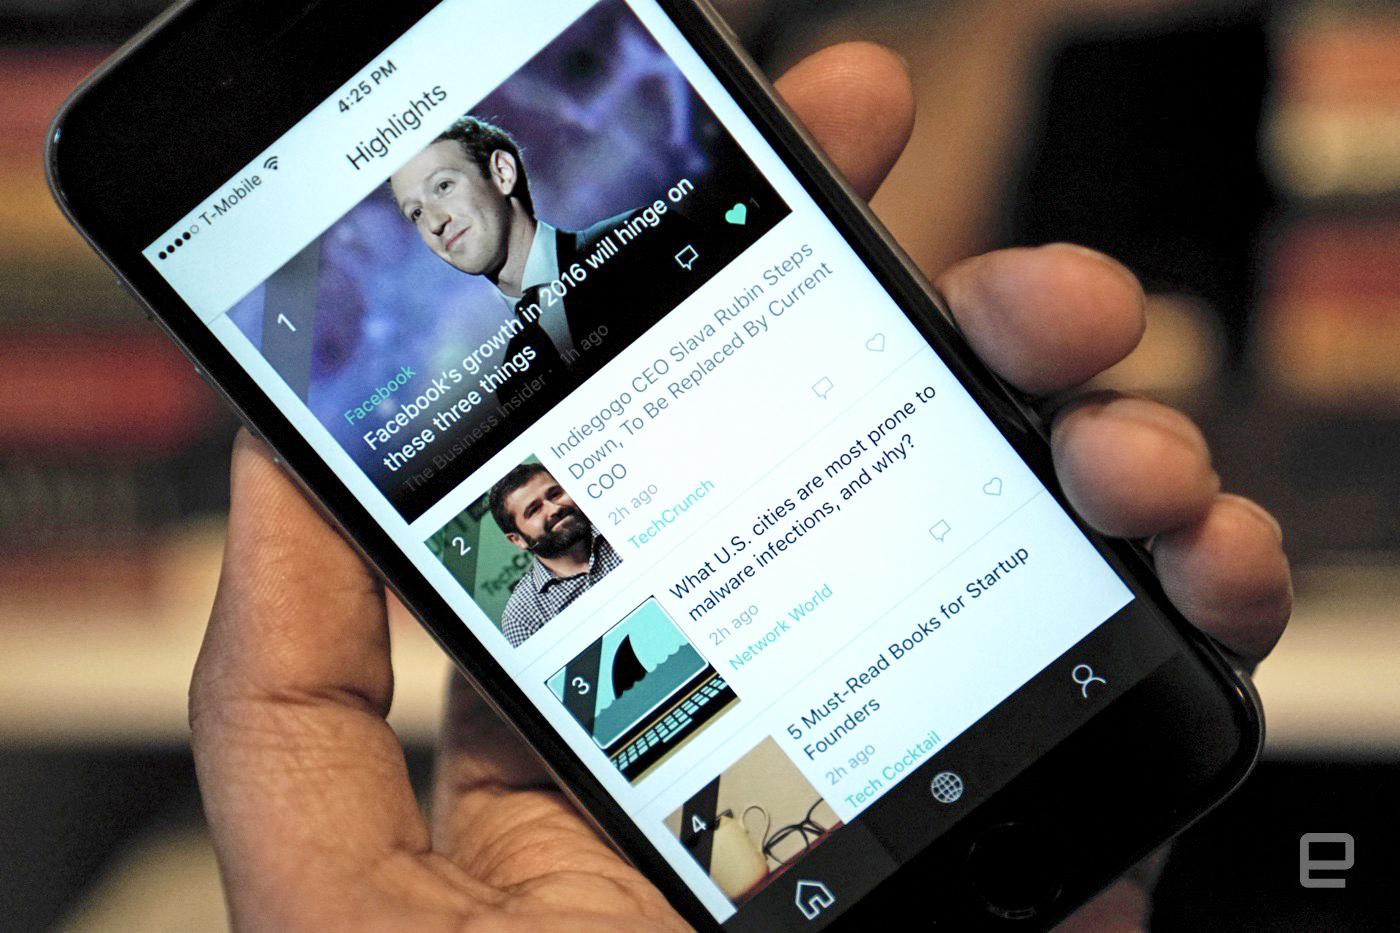 Microsoft relaunches its news app to compete with Google News and Apple News